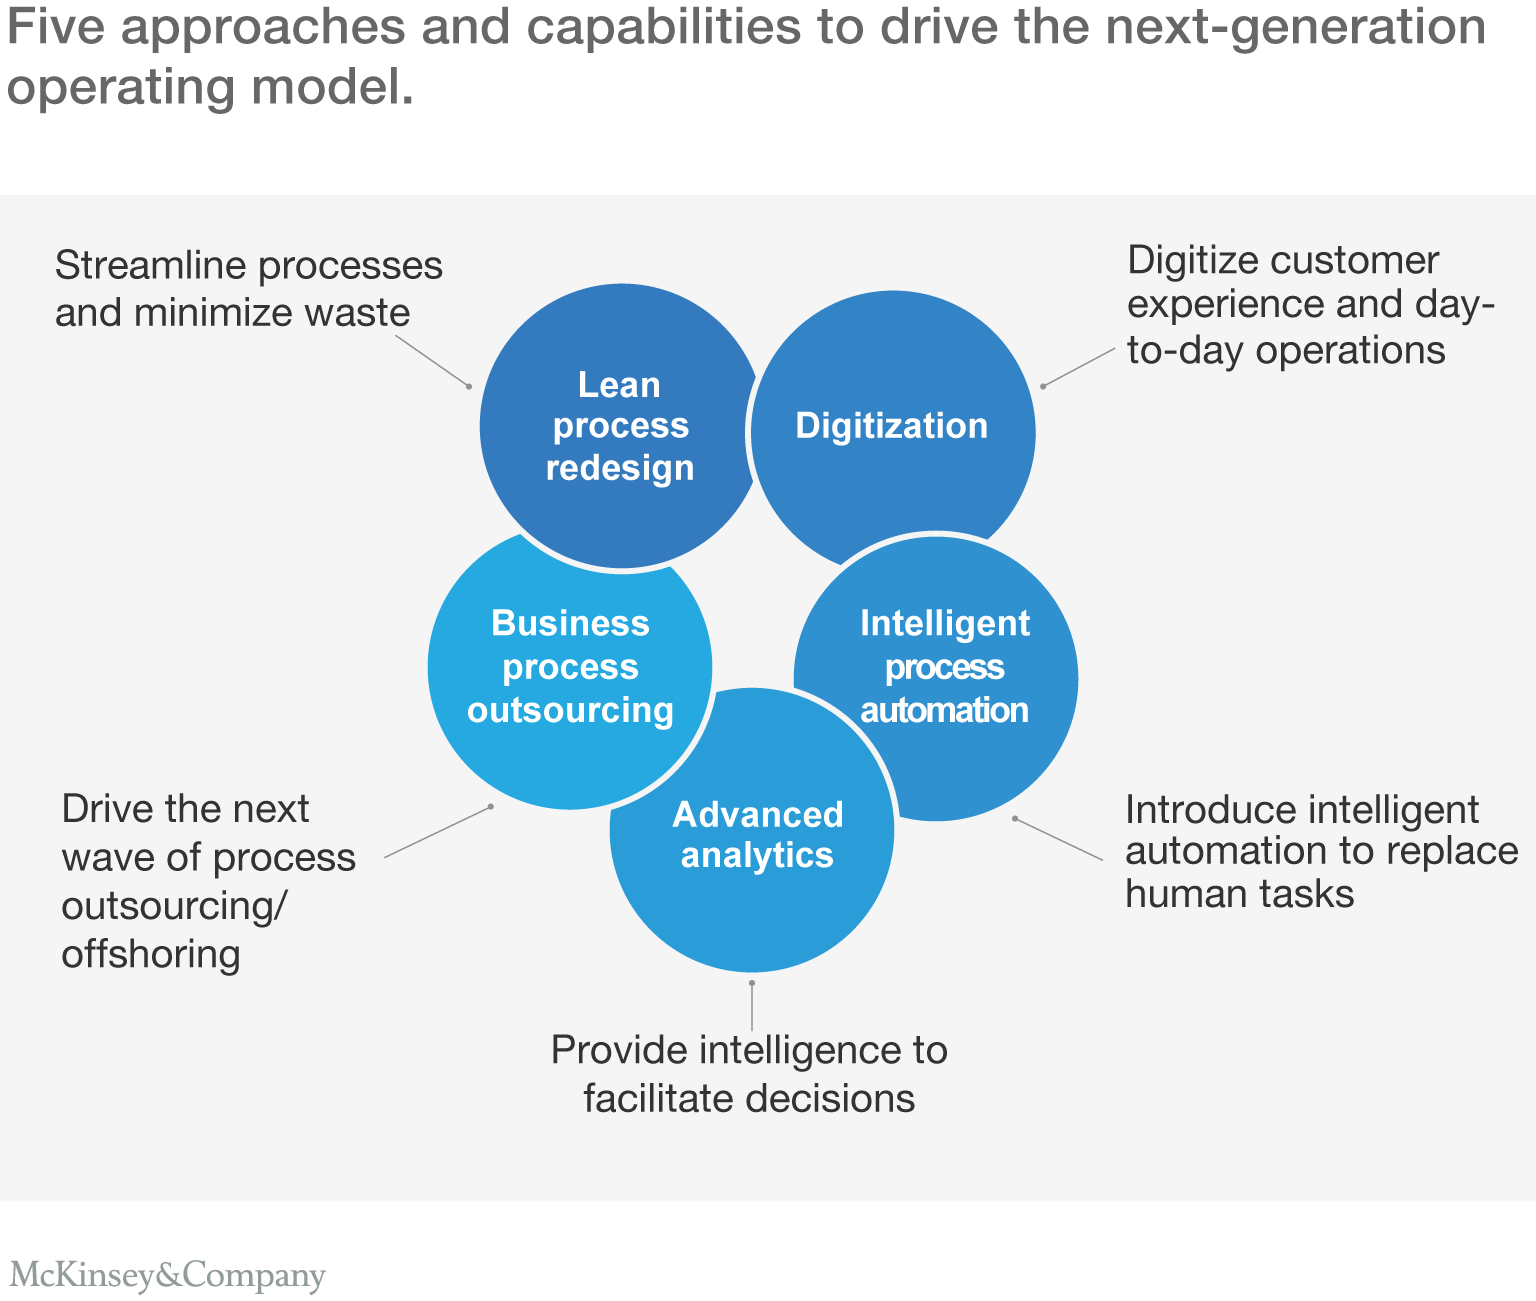 Five approaches and capabilities to drive the next-generation operating model.